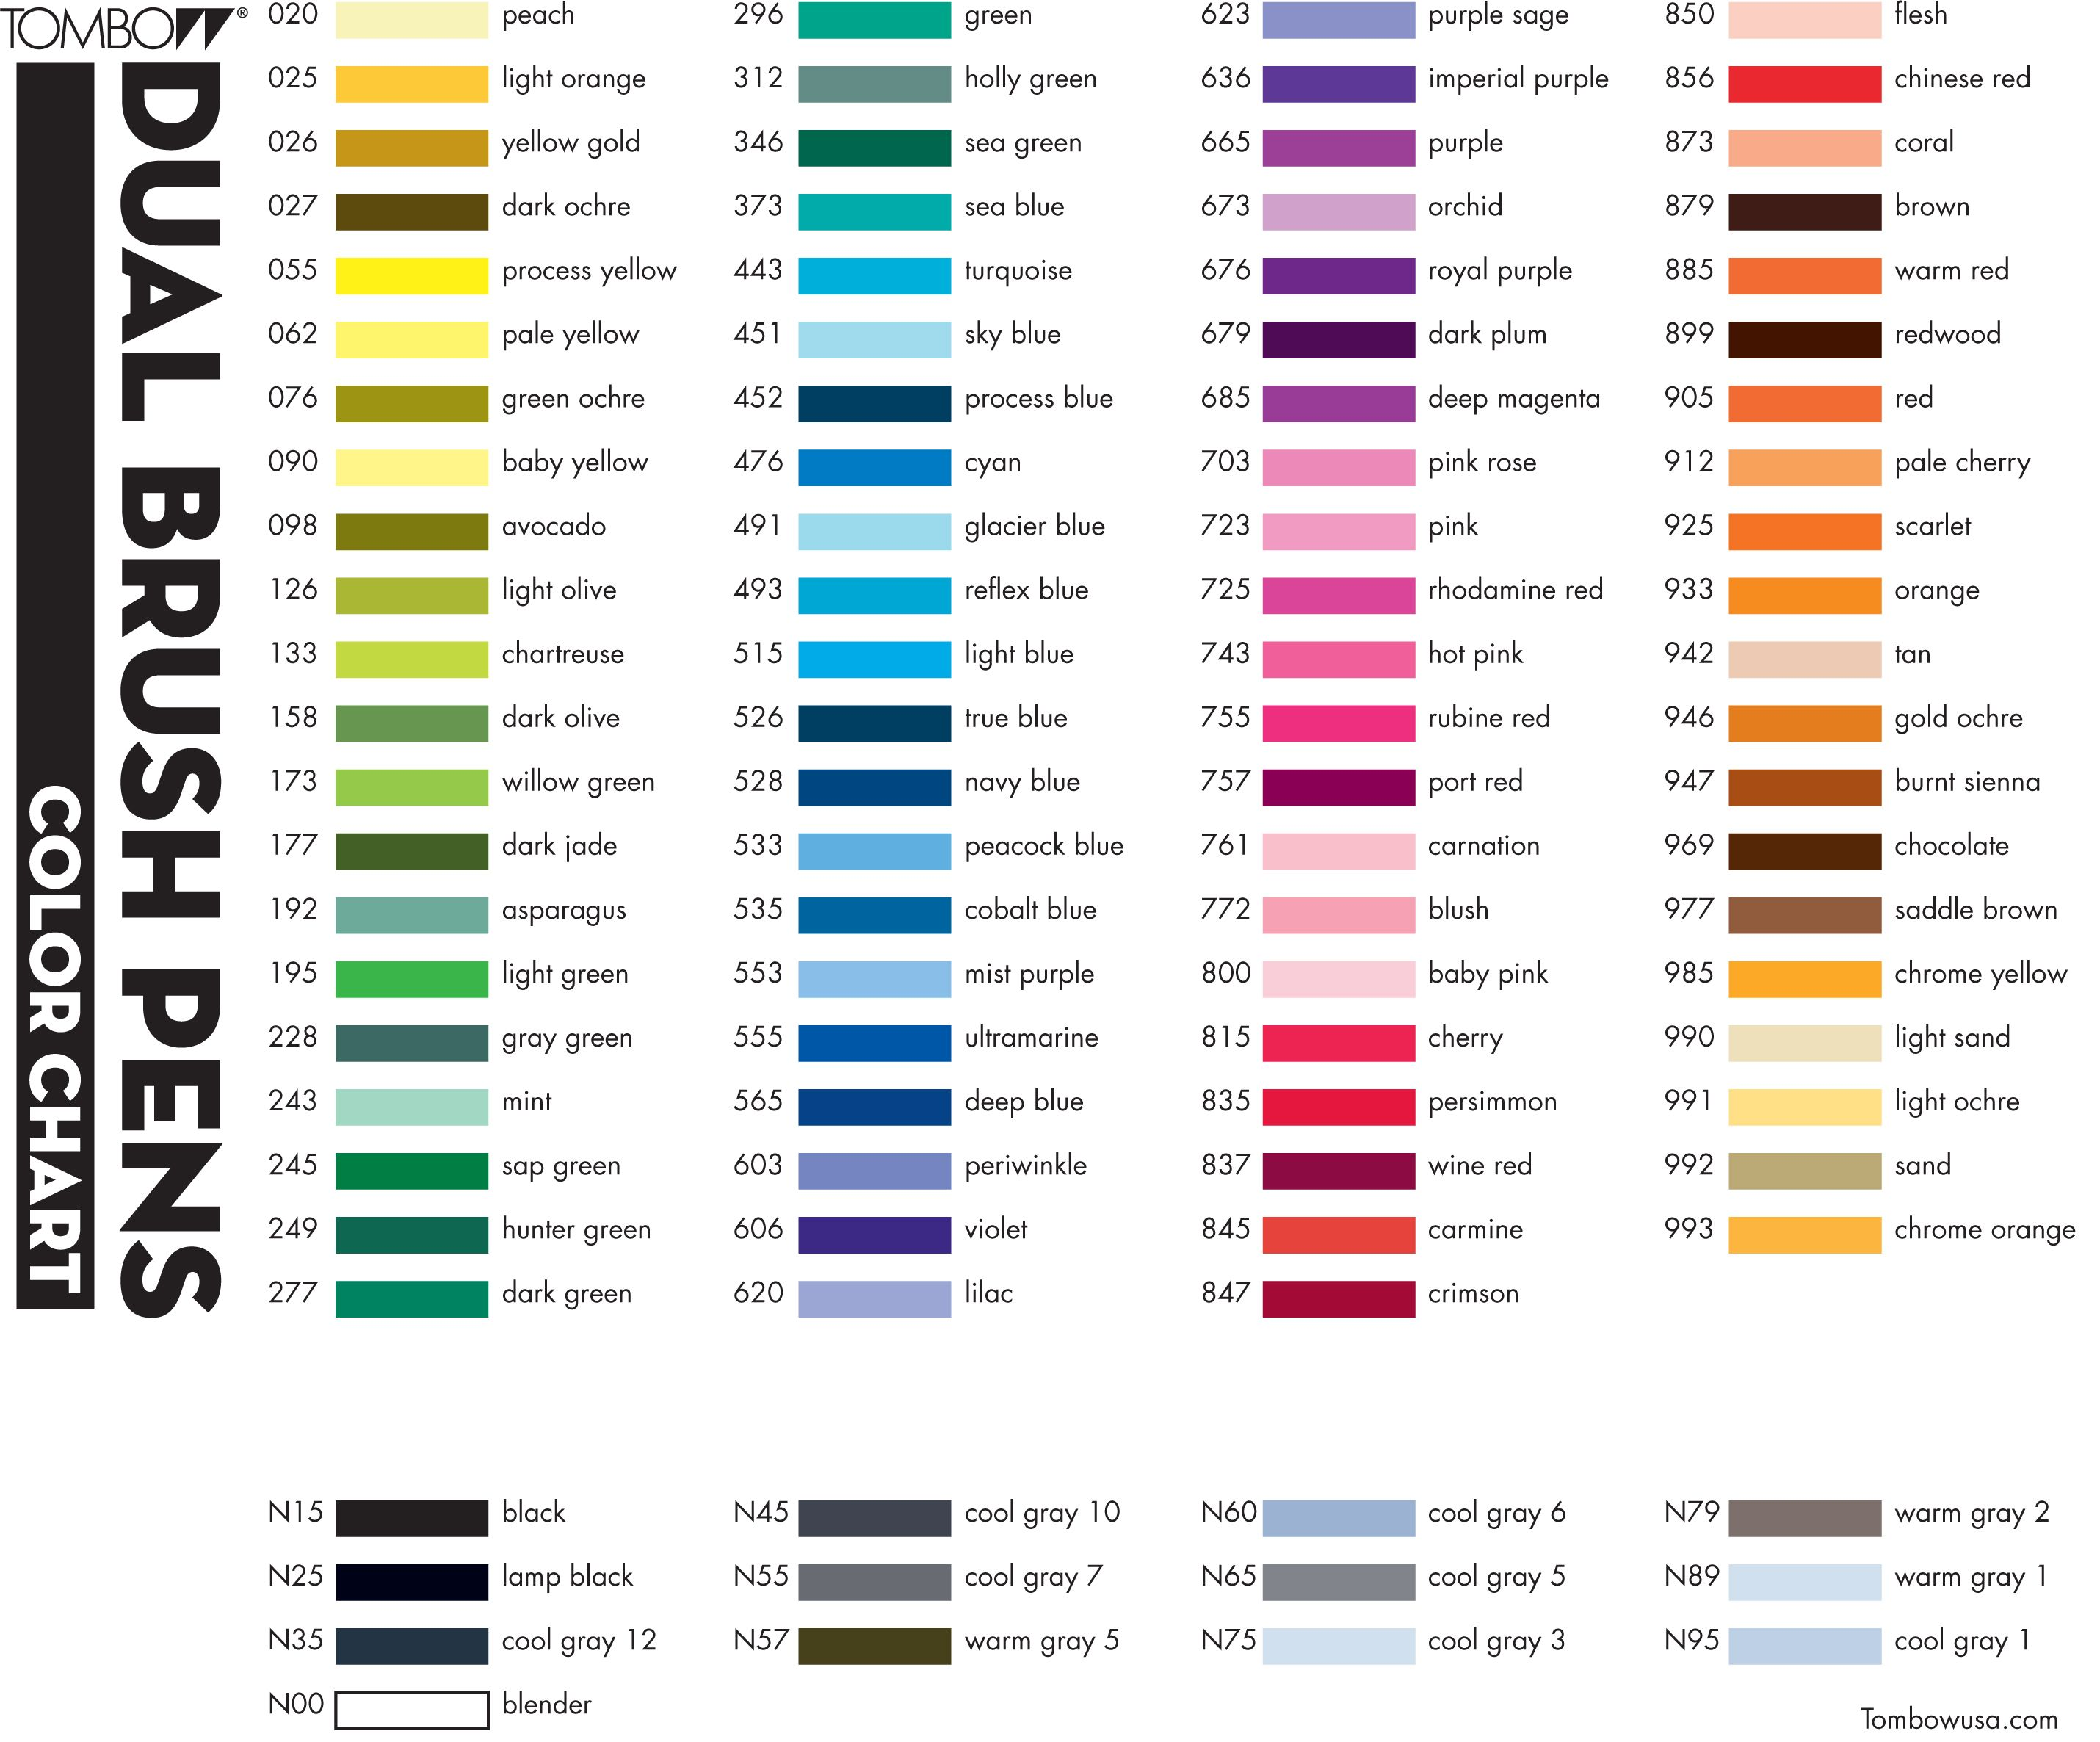 Tombow Dual Brush Pen Color Chart Have N65 N79 N95 879 977